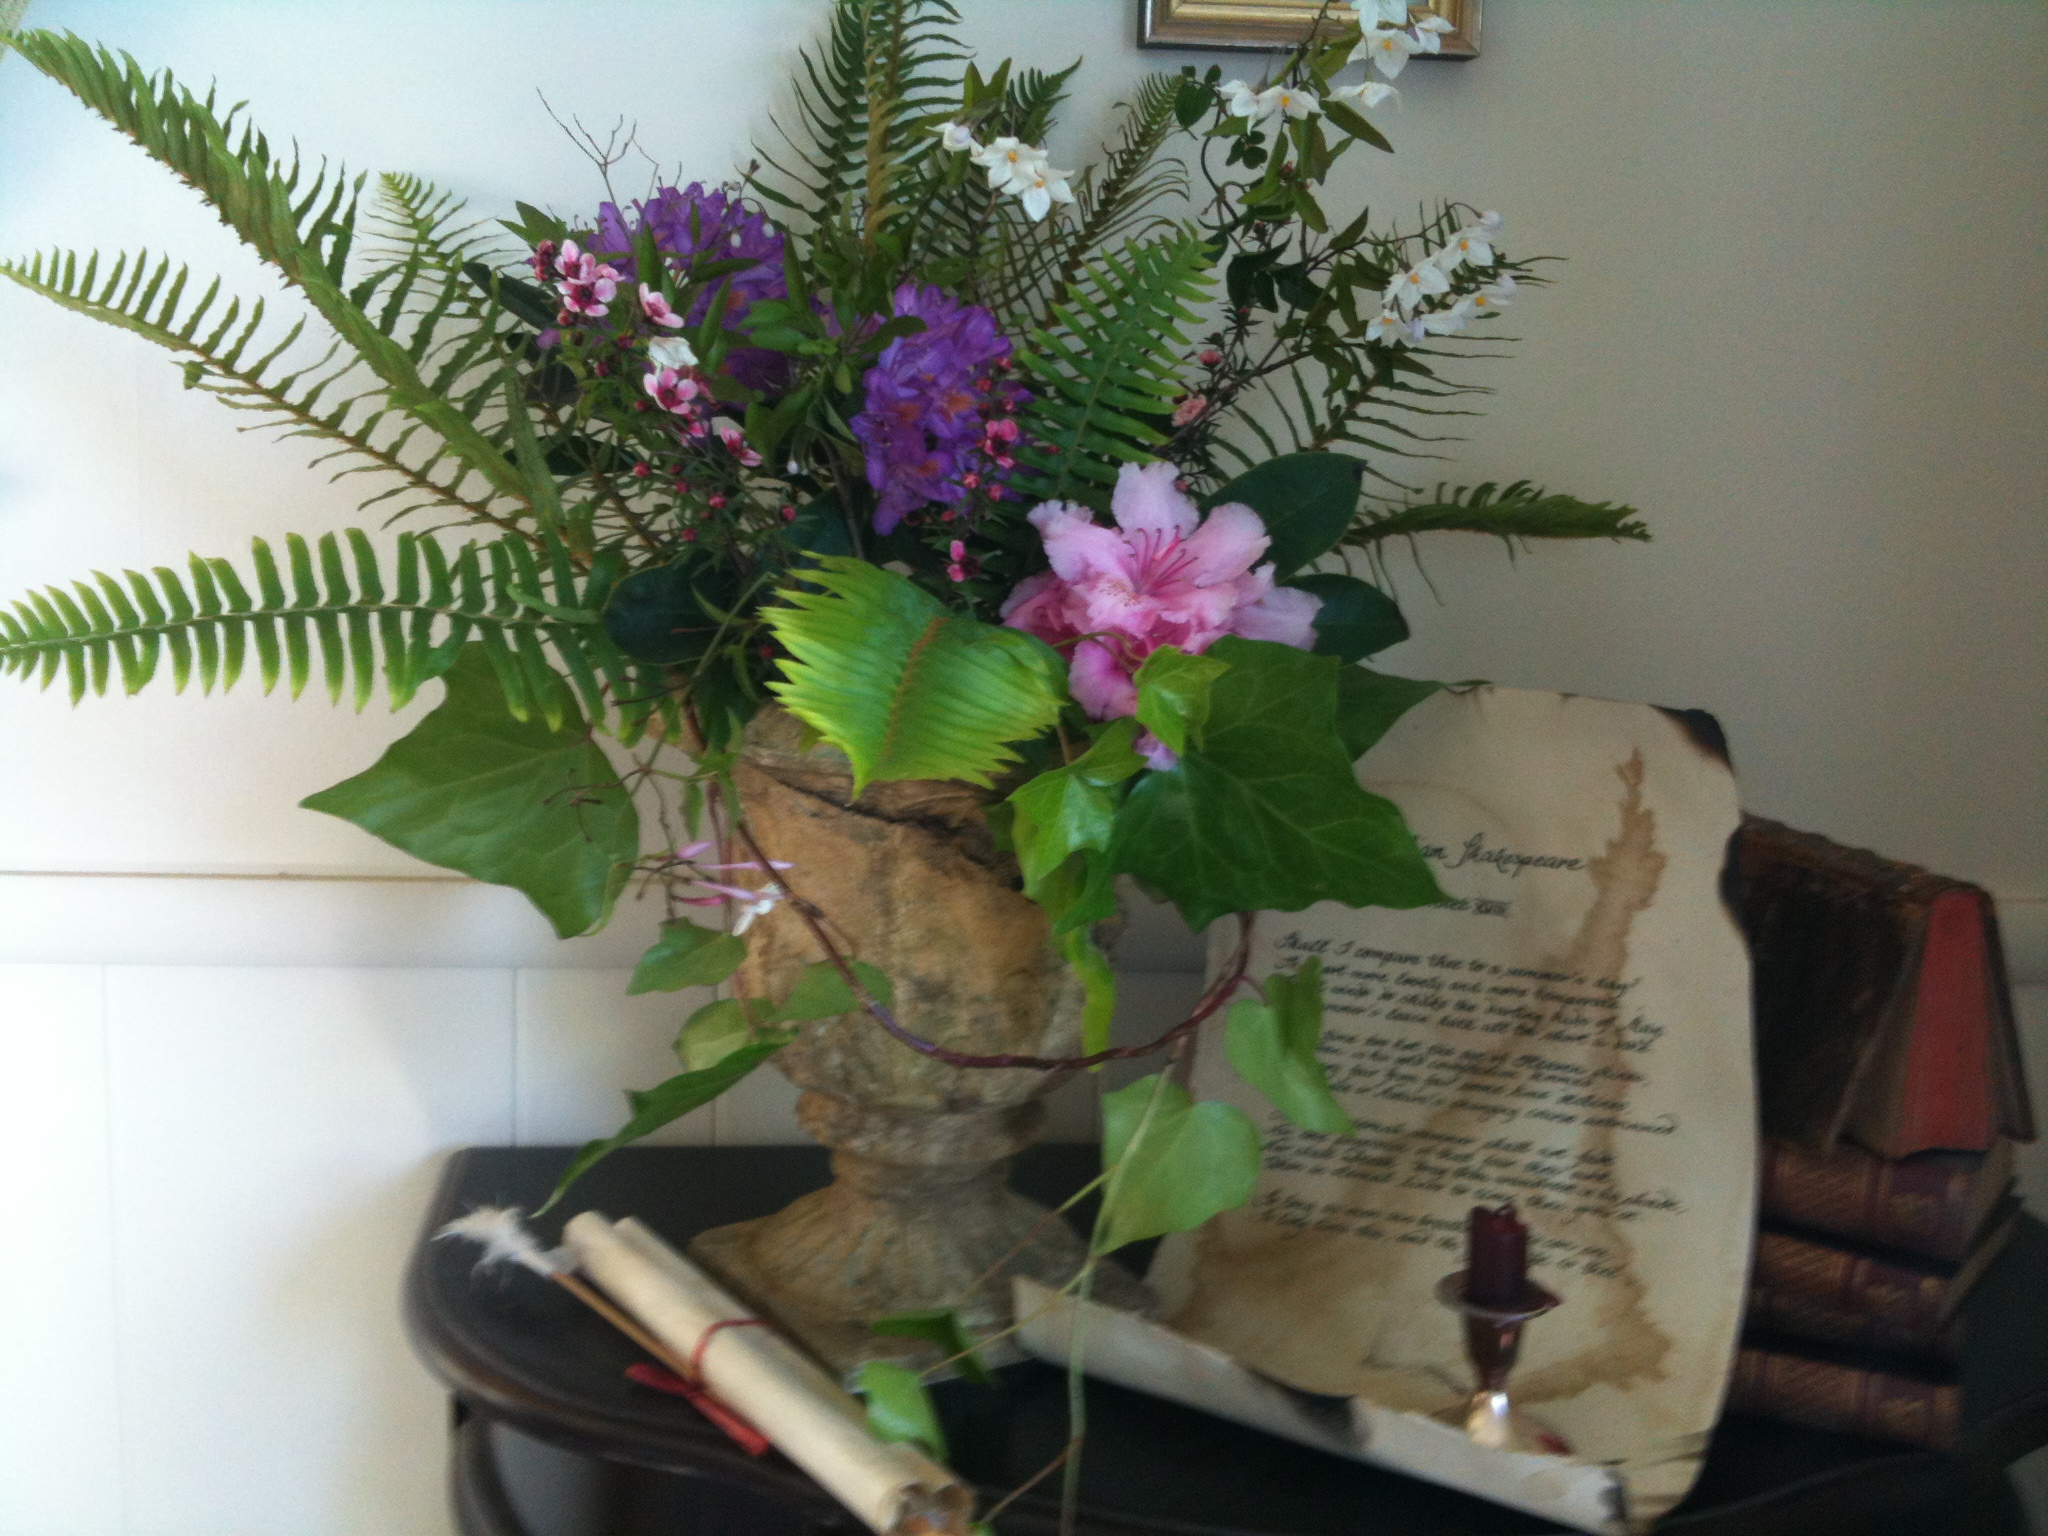 Romantic flower arrangements around antique books